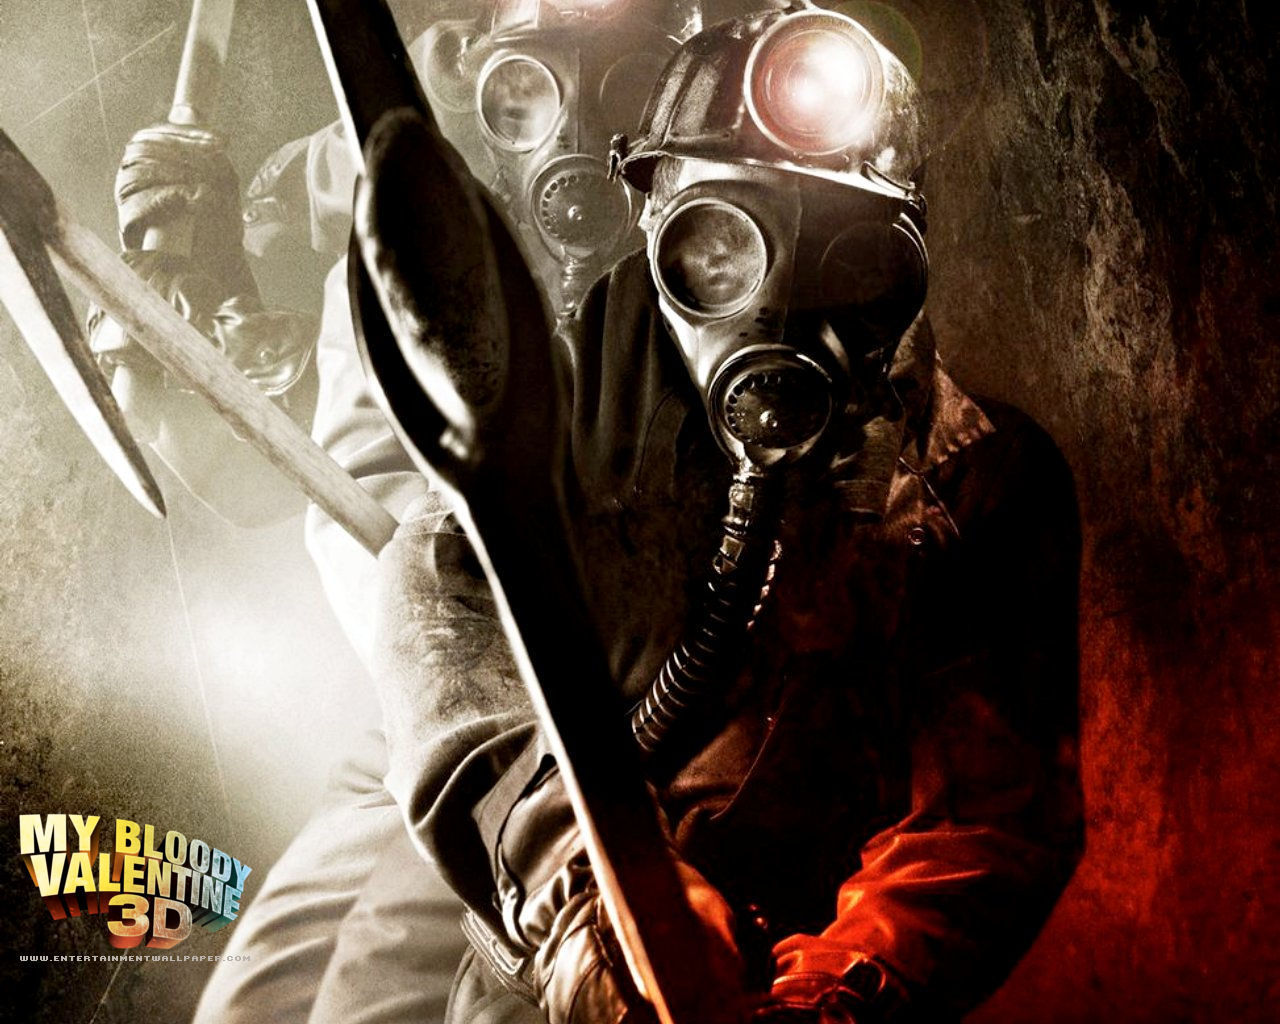 My Bloody Valentine 3 D Upcoming Movies Wallpaper 3179097 Fanpop